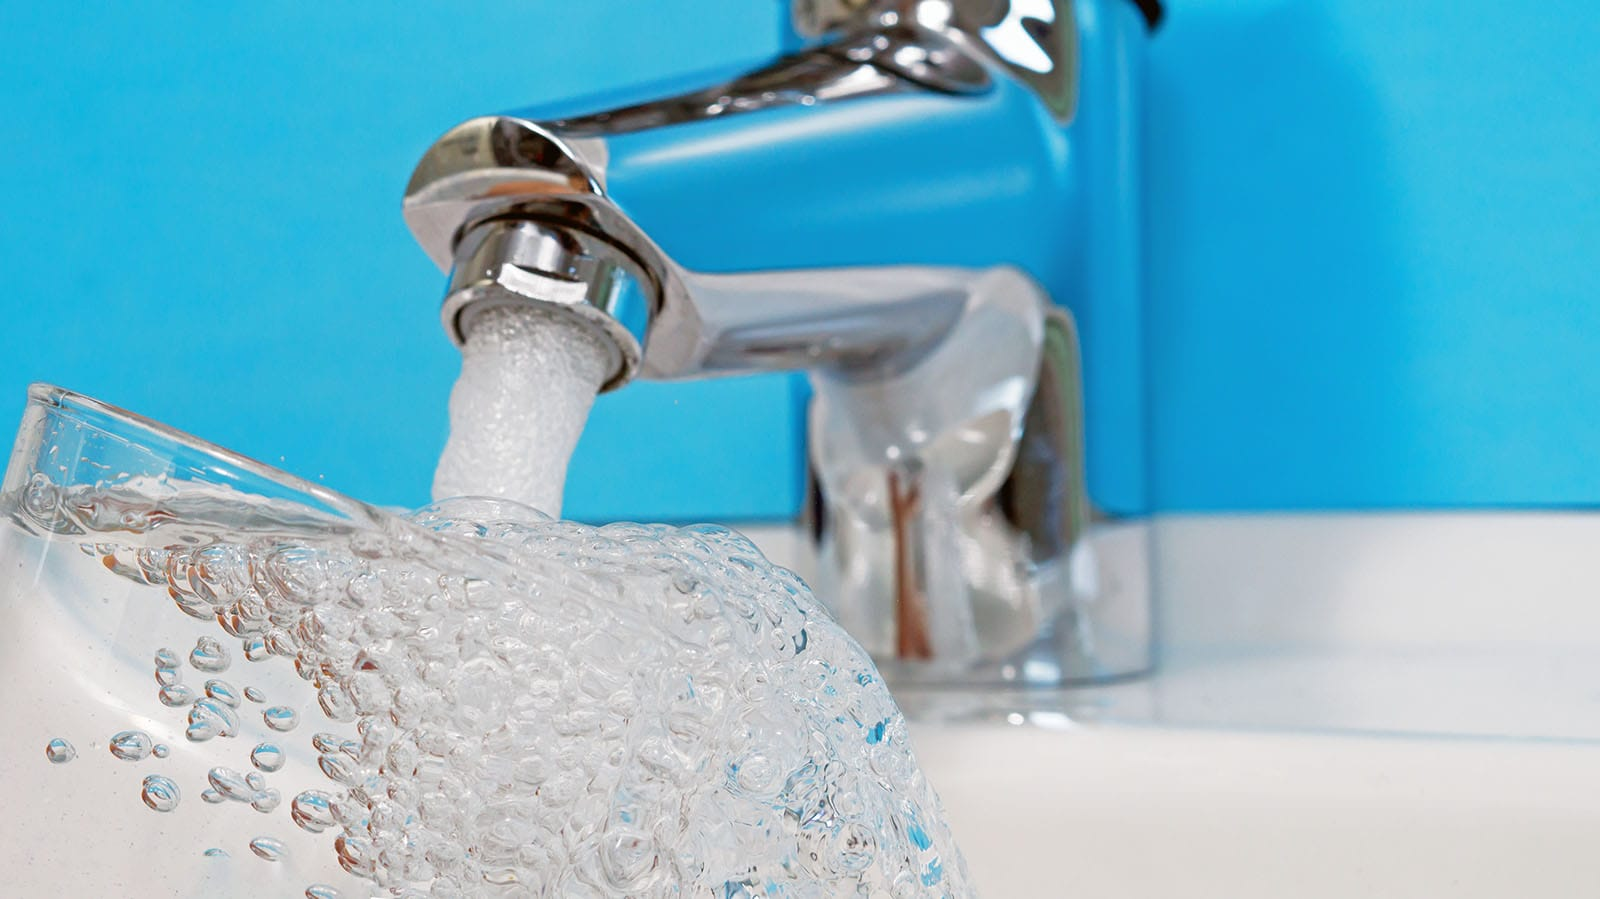 A water faucet overflowing a glass with clean drinking water. Backflow testing services ensure the water is clean every time.